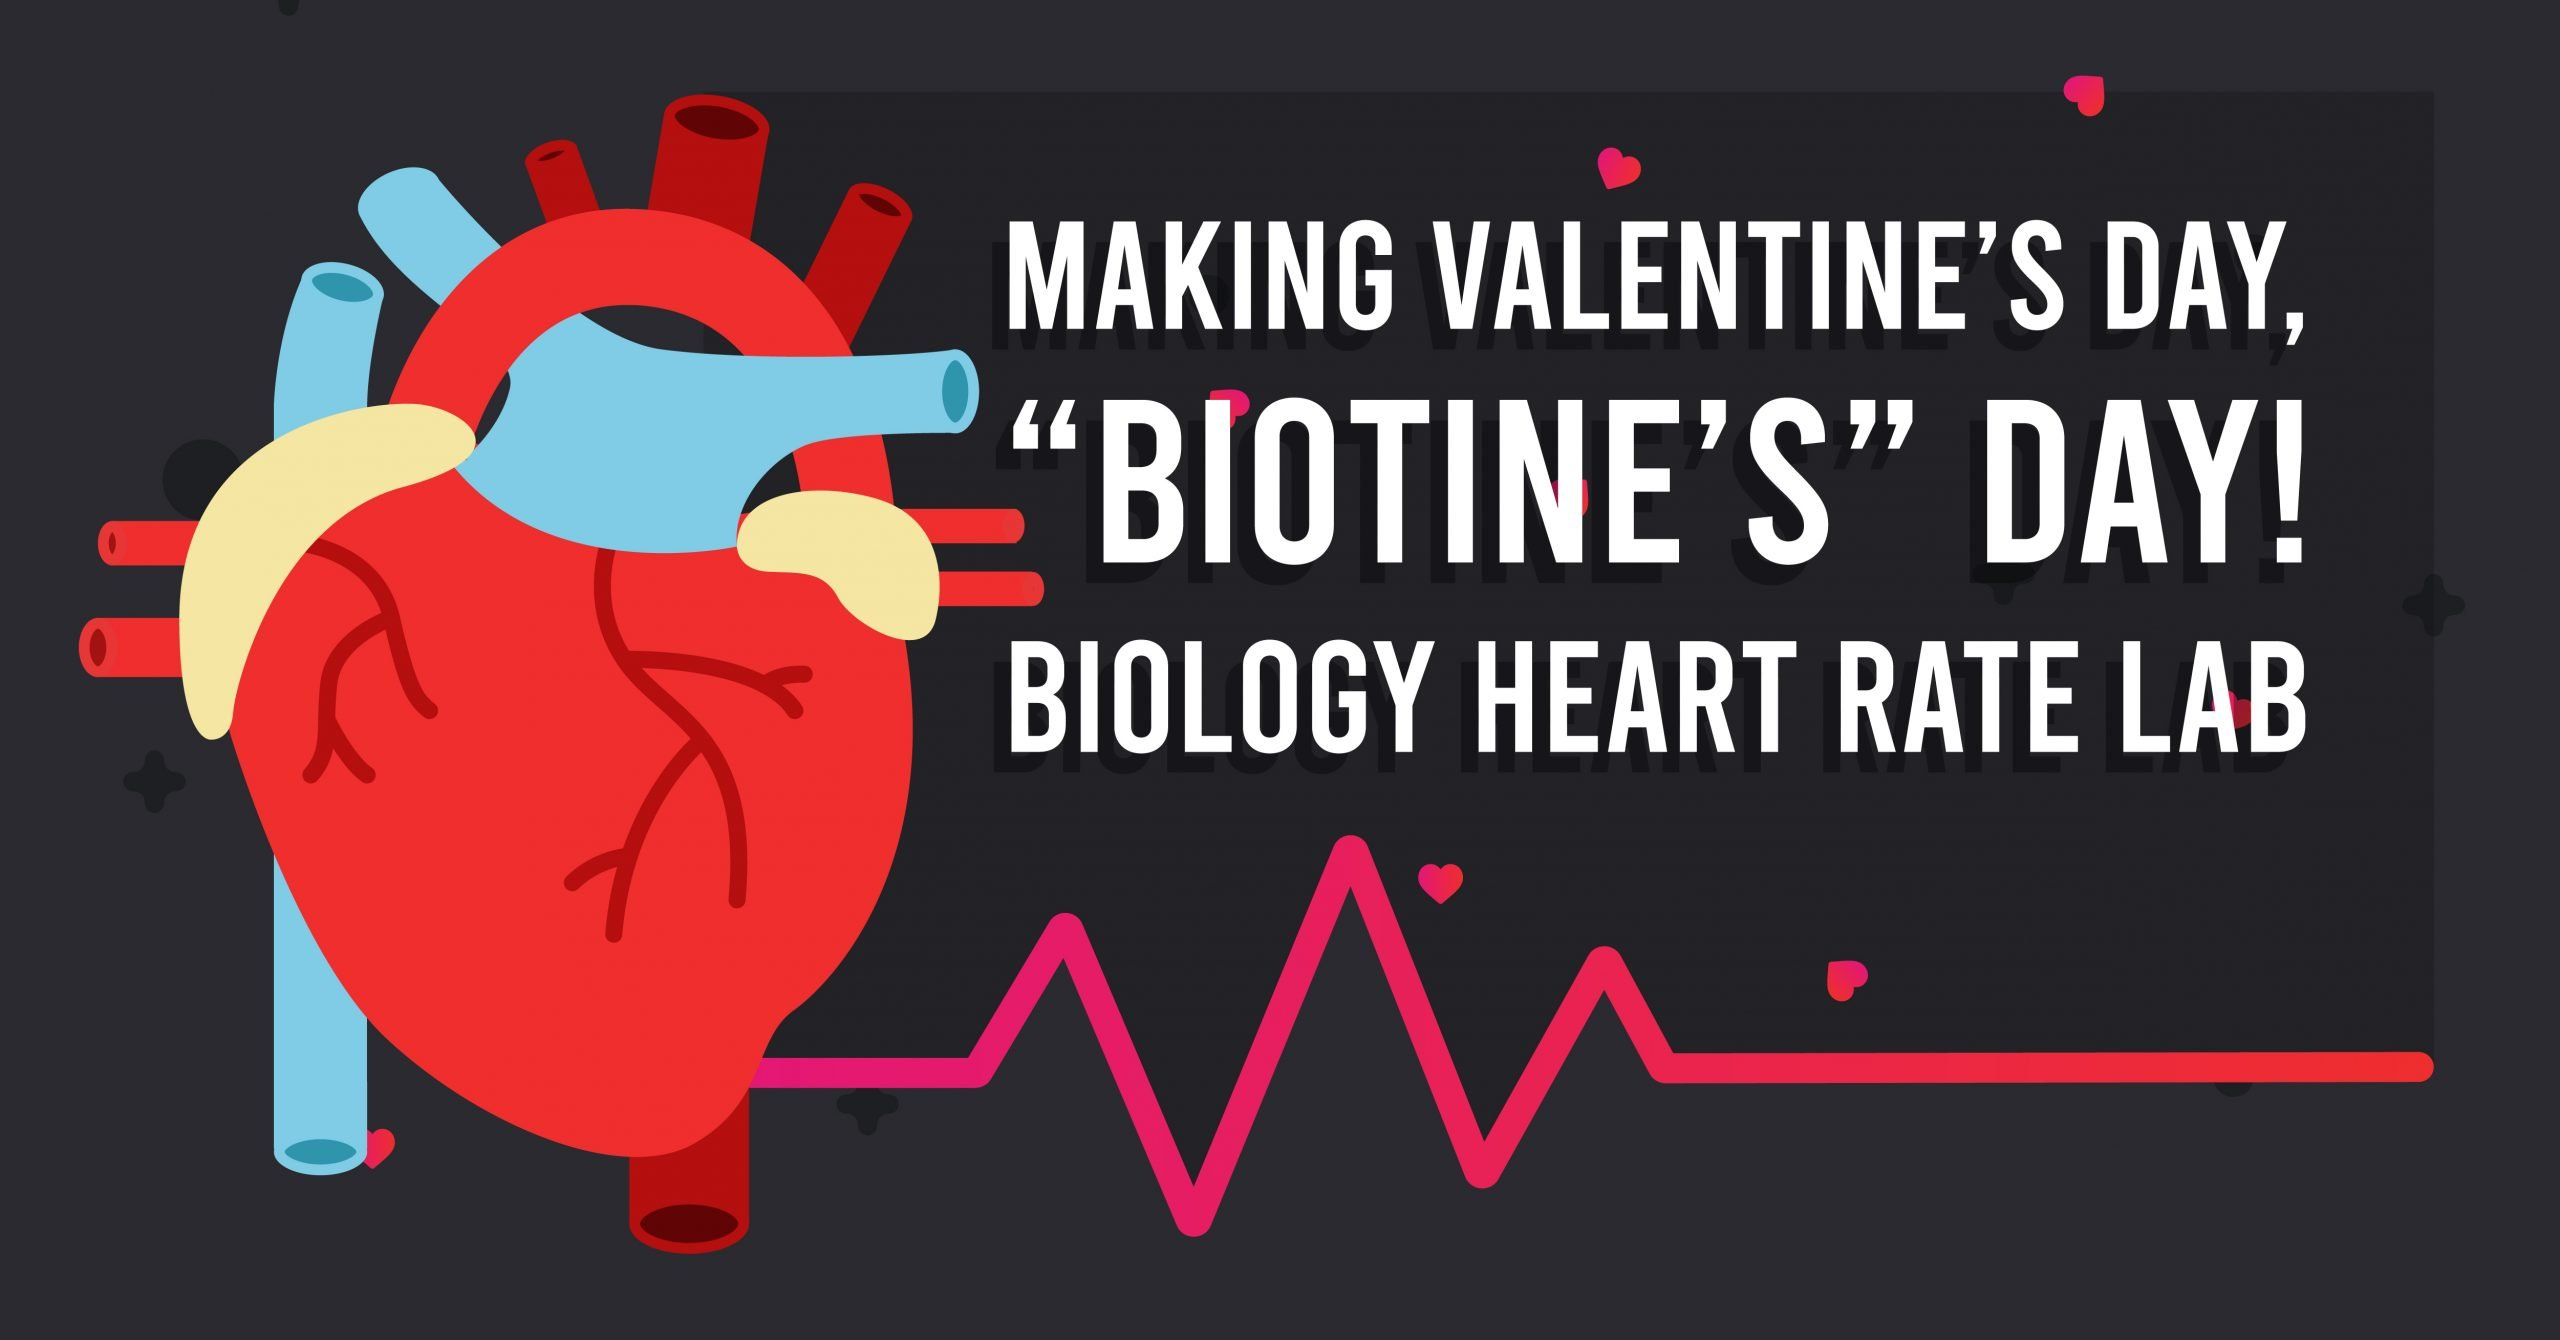 Valentine's Day Biology Activity: Making Valentine's Day Biotine's Day